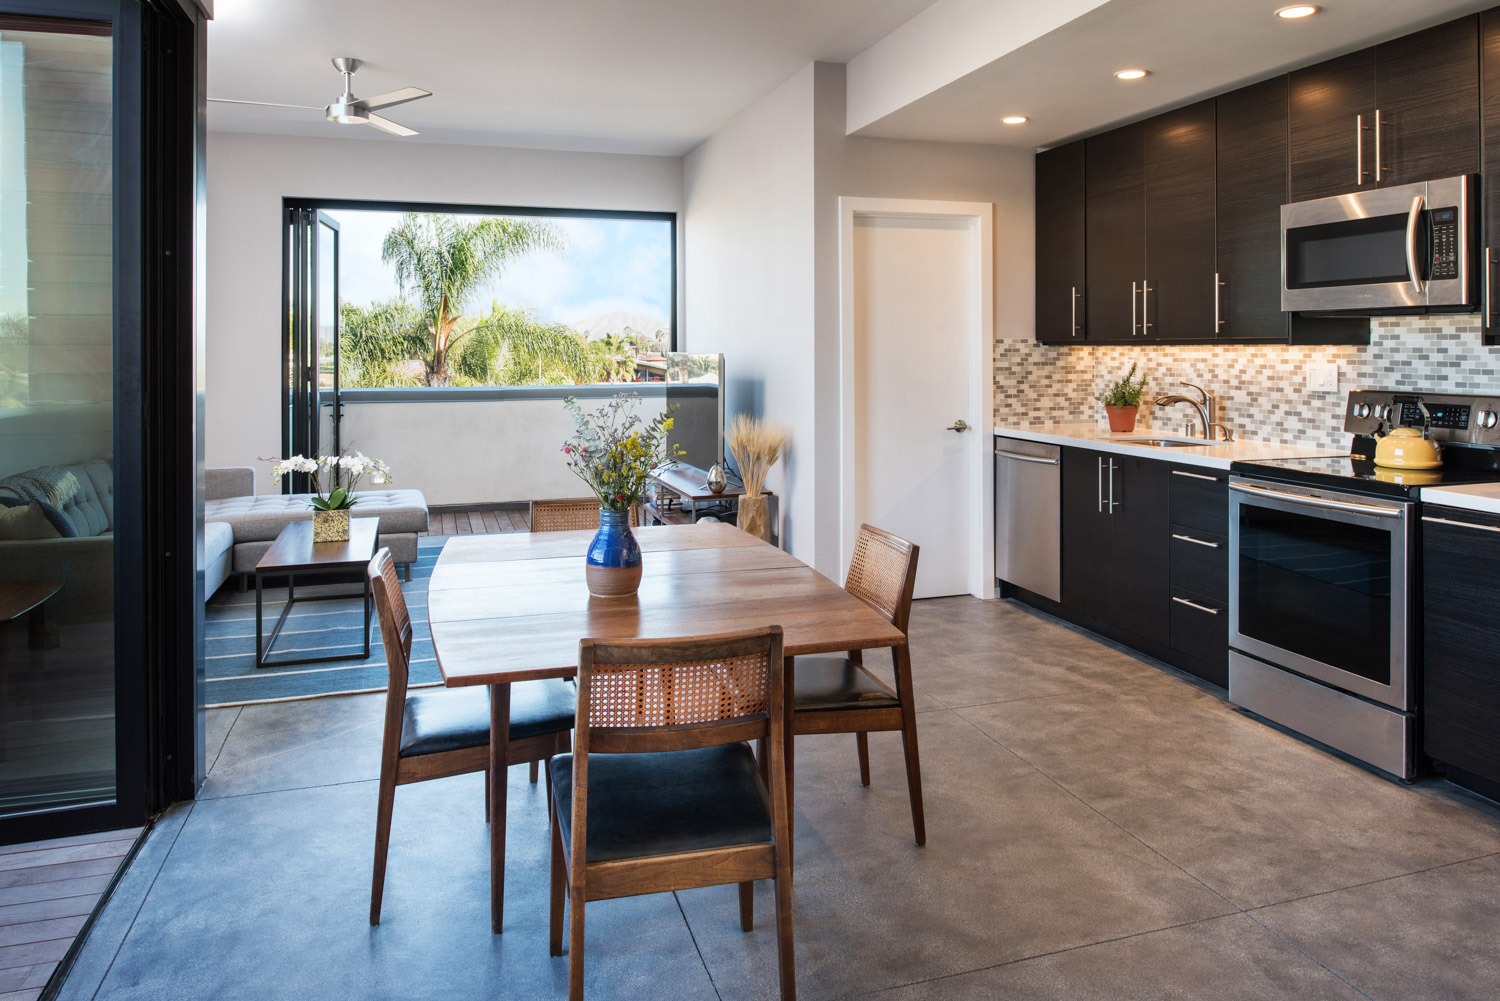 Apartment kitchen interior, architectural photographer san diego, southern california architecture photography